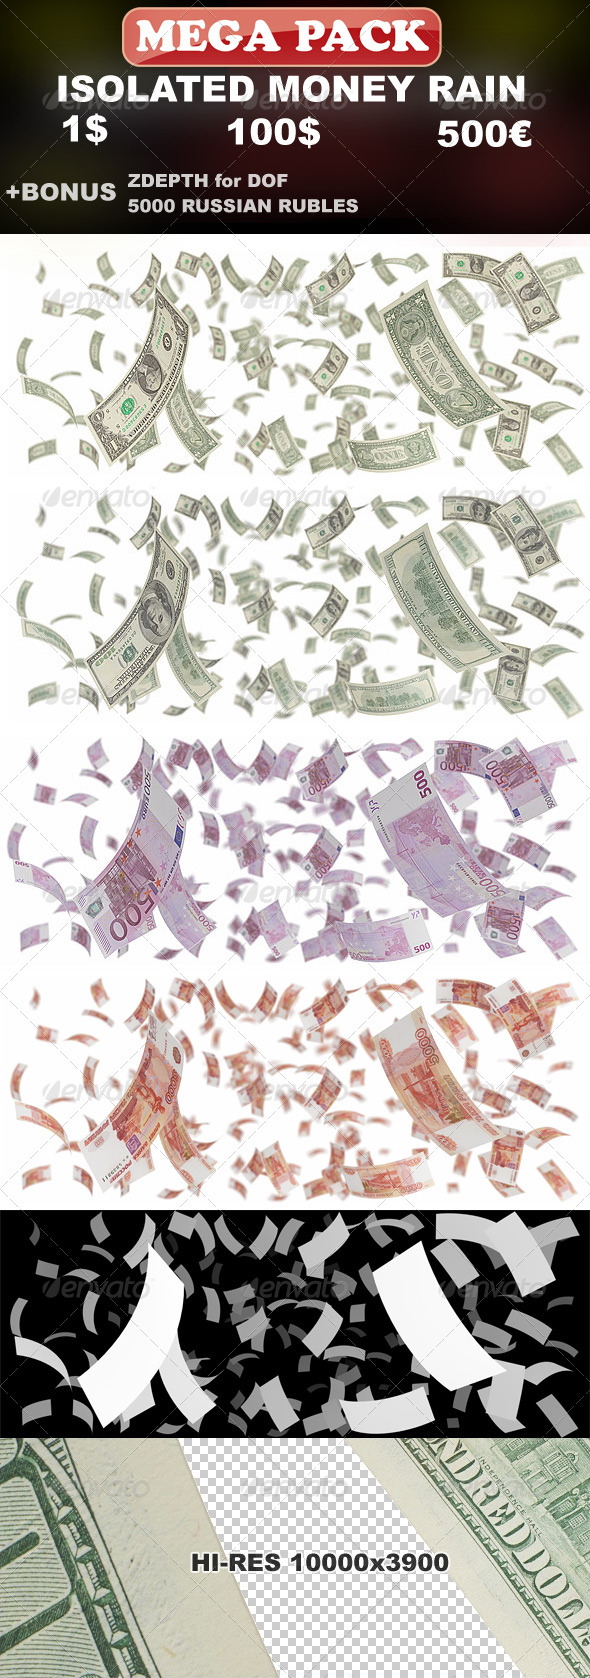 Isolated Money Rain Mega-Pack (1$, 100$, 500€) - Objects 3D Renders